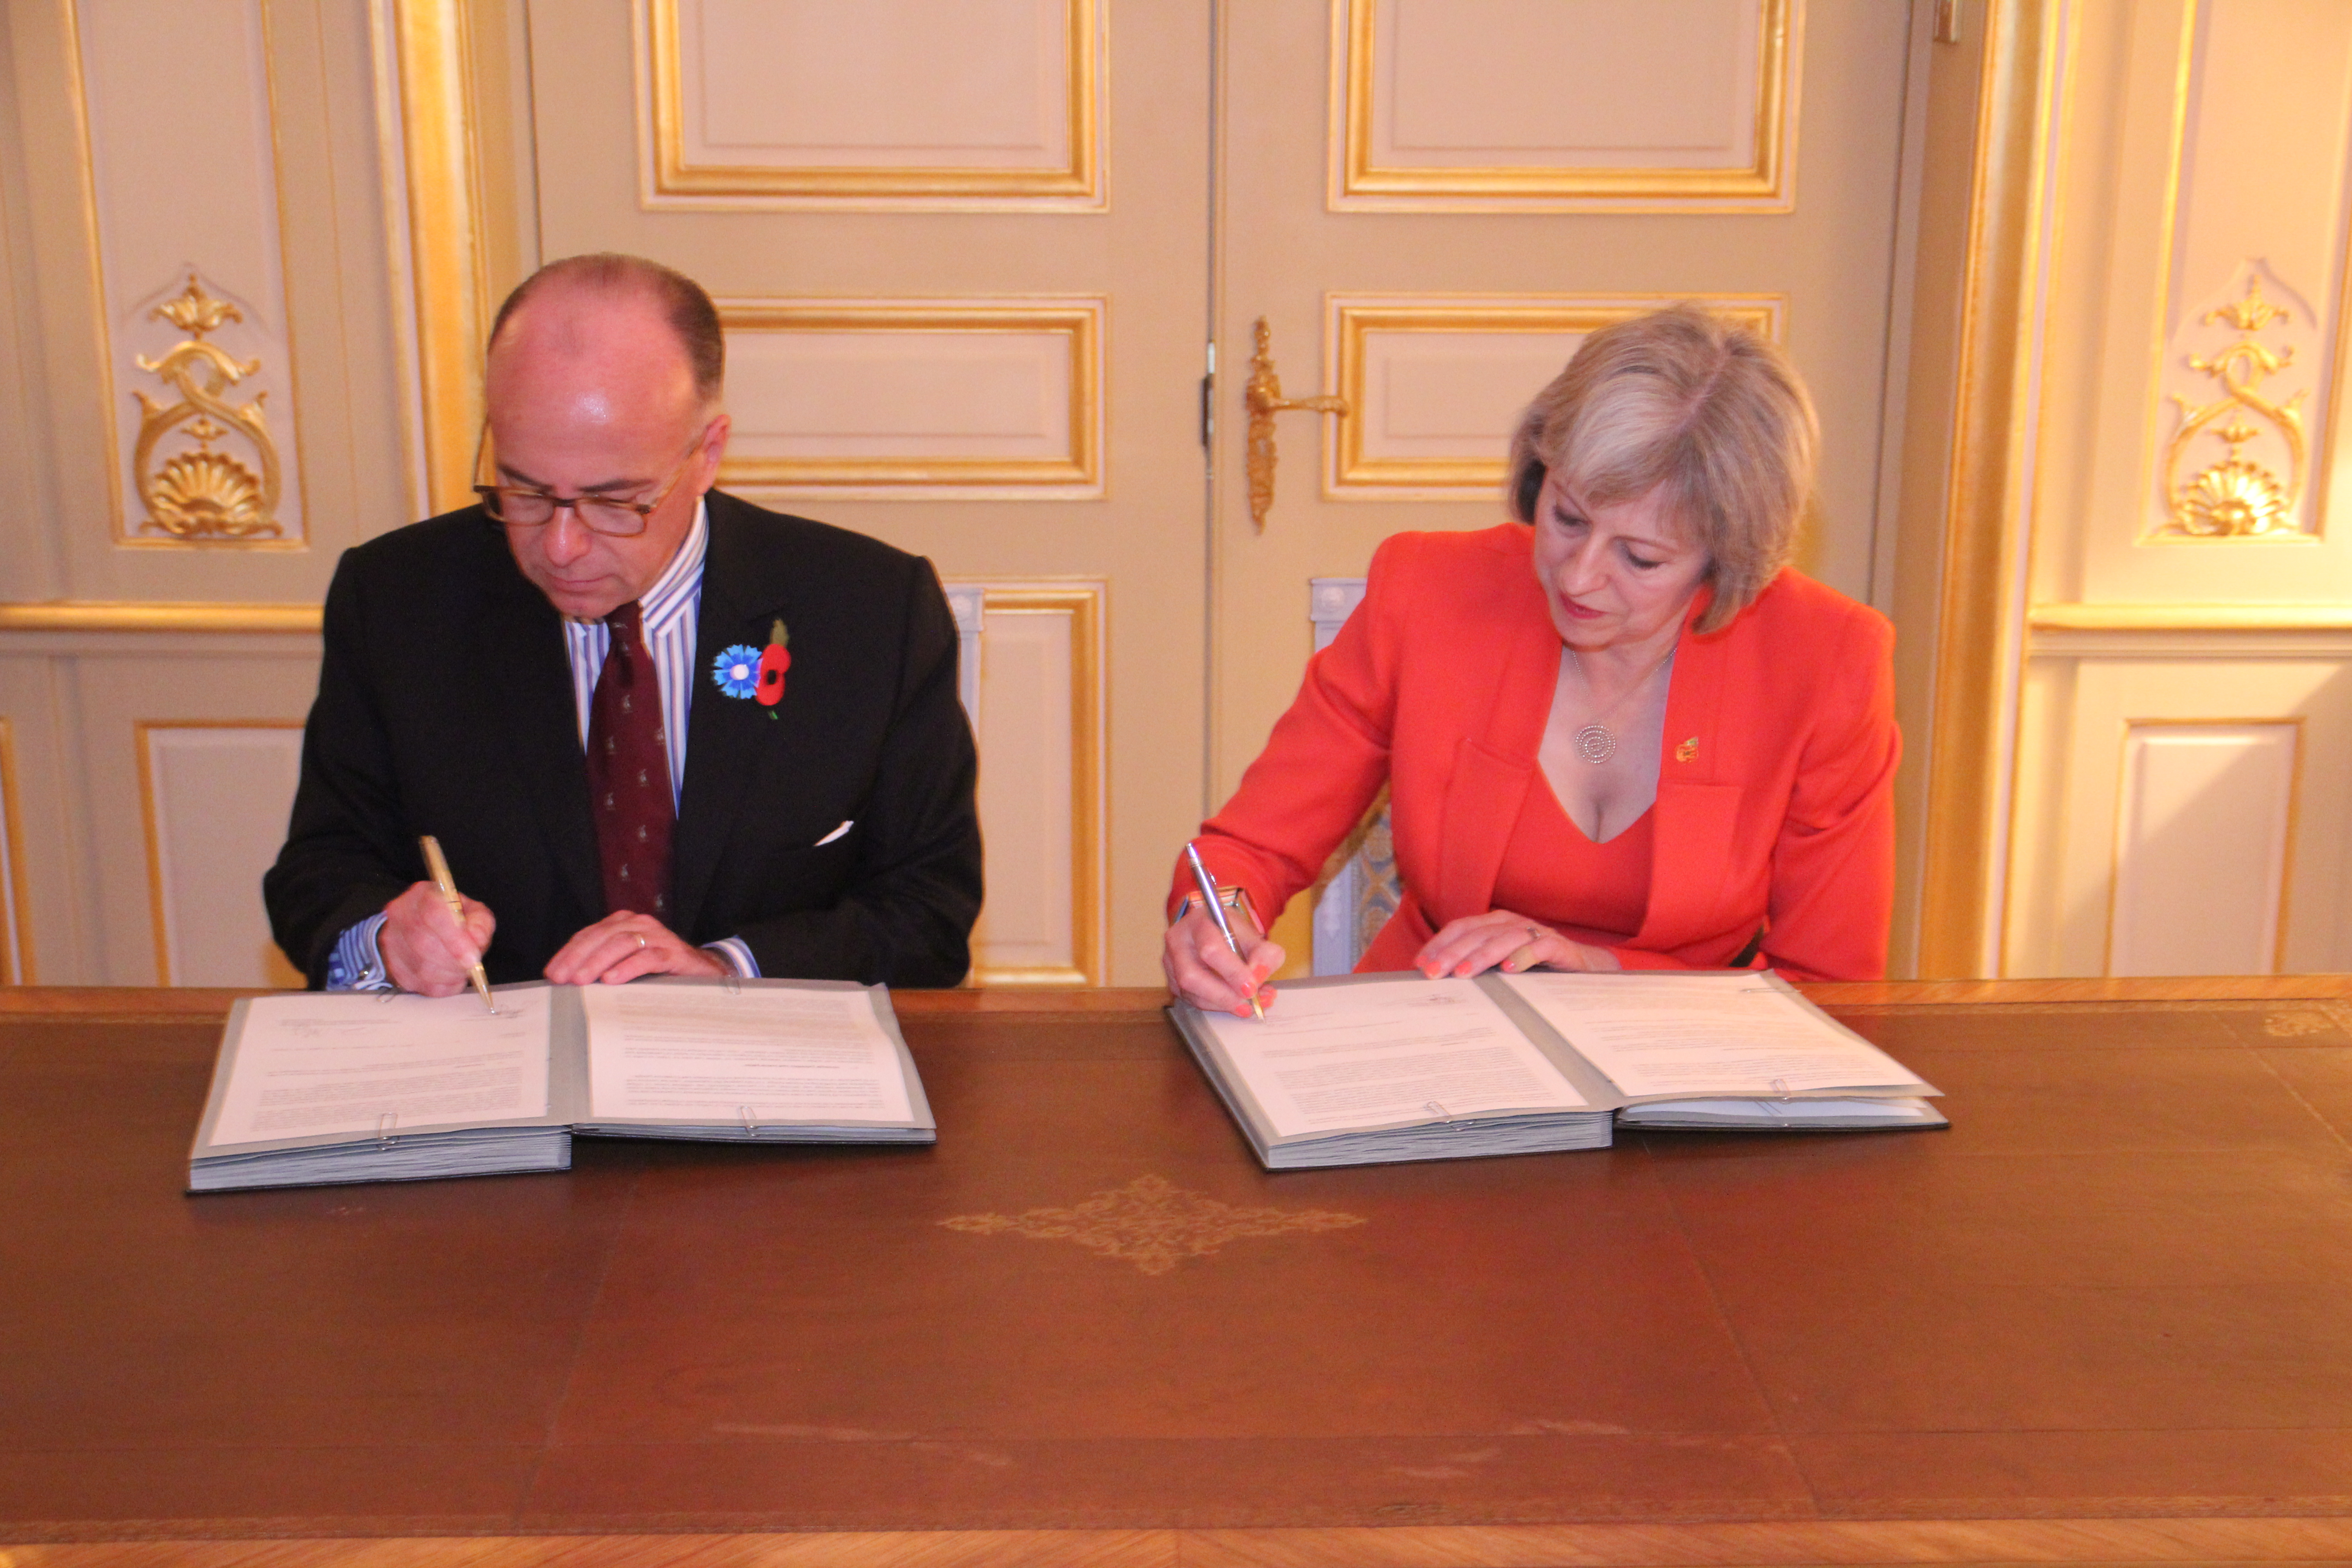 Bernard cazeneuve rencontre son homologue t may londres for Chambre de commerce francaise a londres